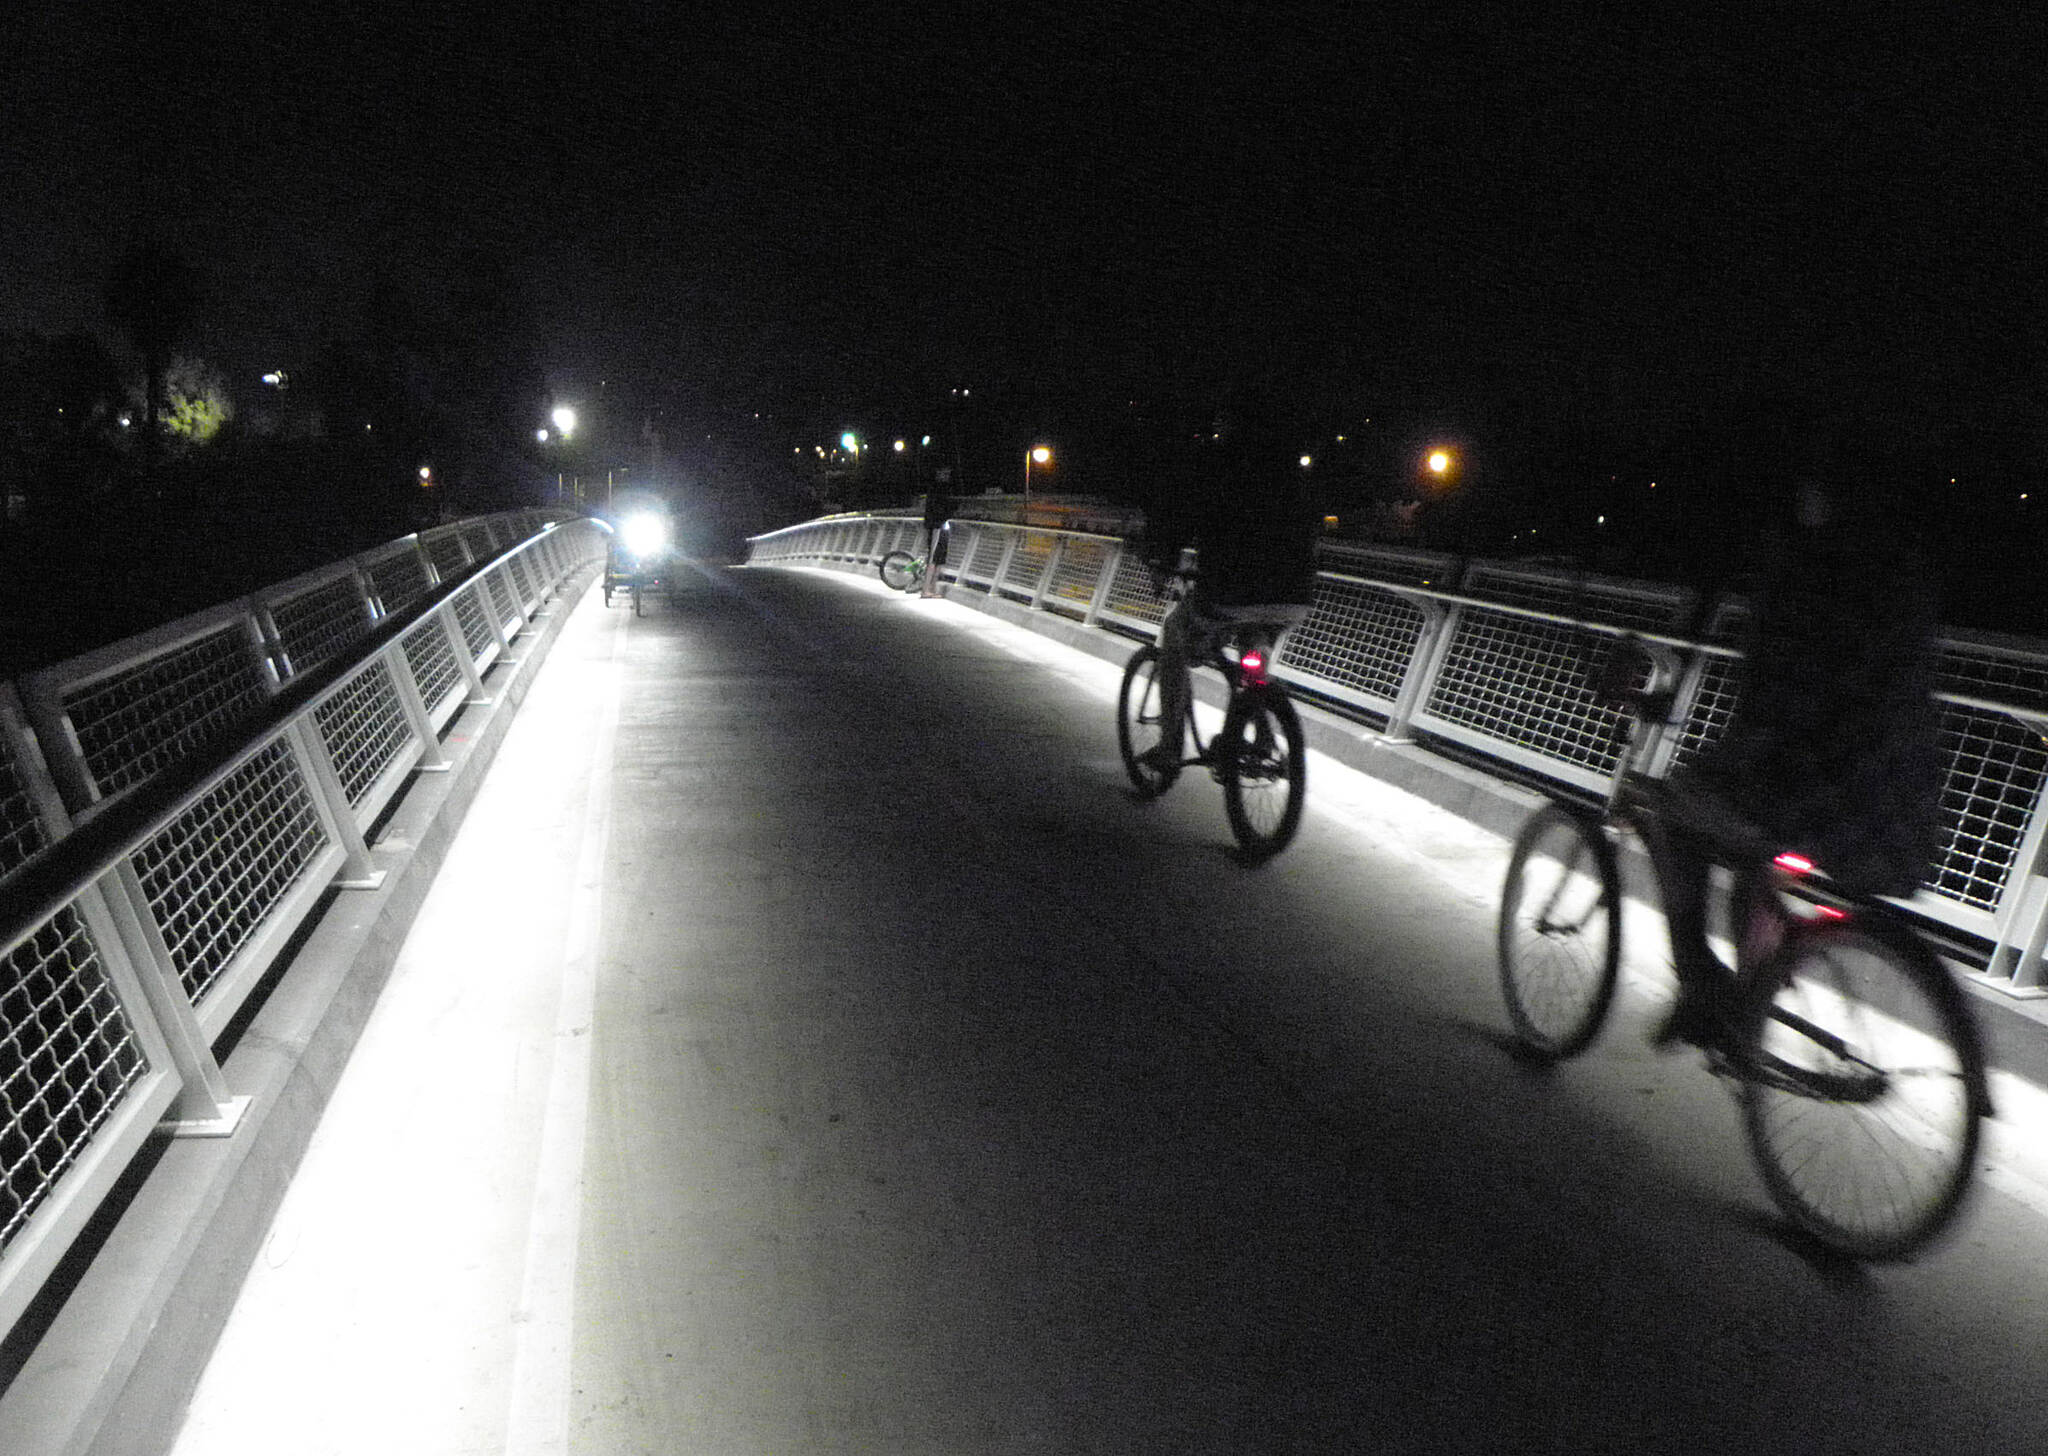 Mission Bay Bike Path The new trail bridge over Rose Inlet Nice lighting comes from under the hand rails, so there are no lights on poles.